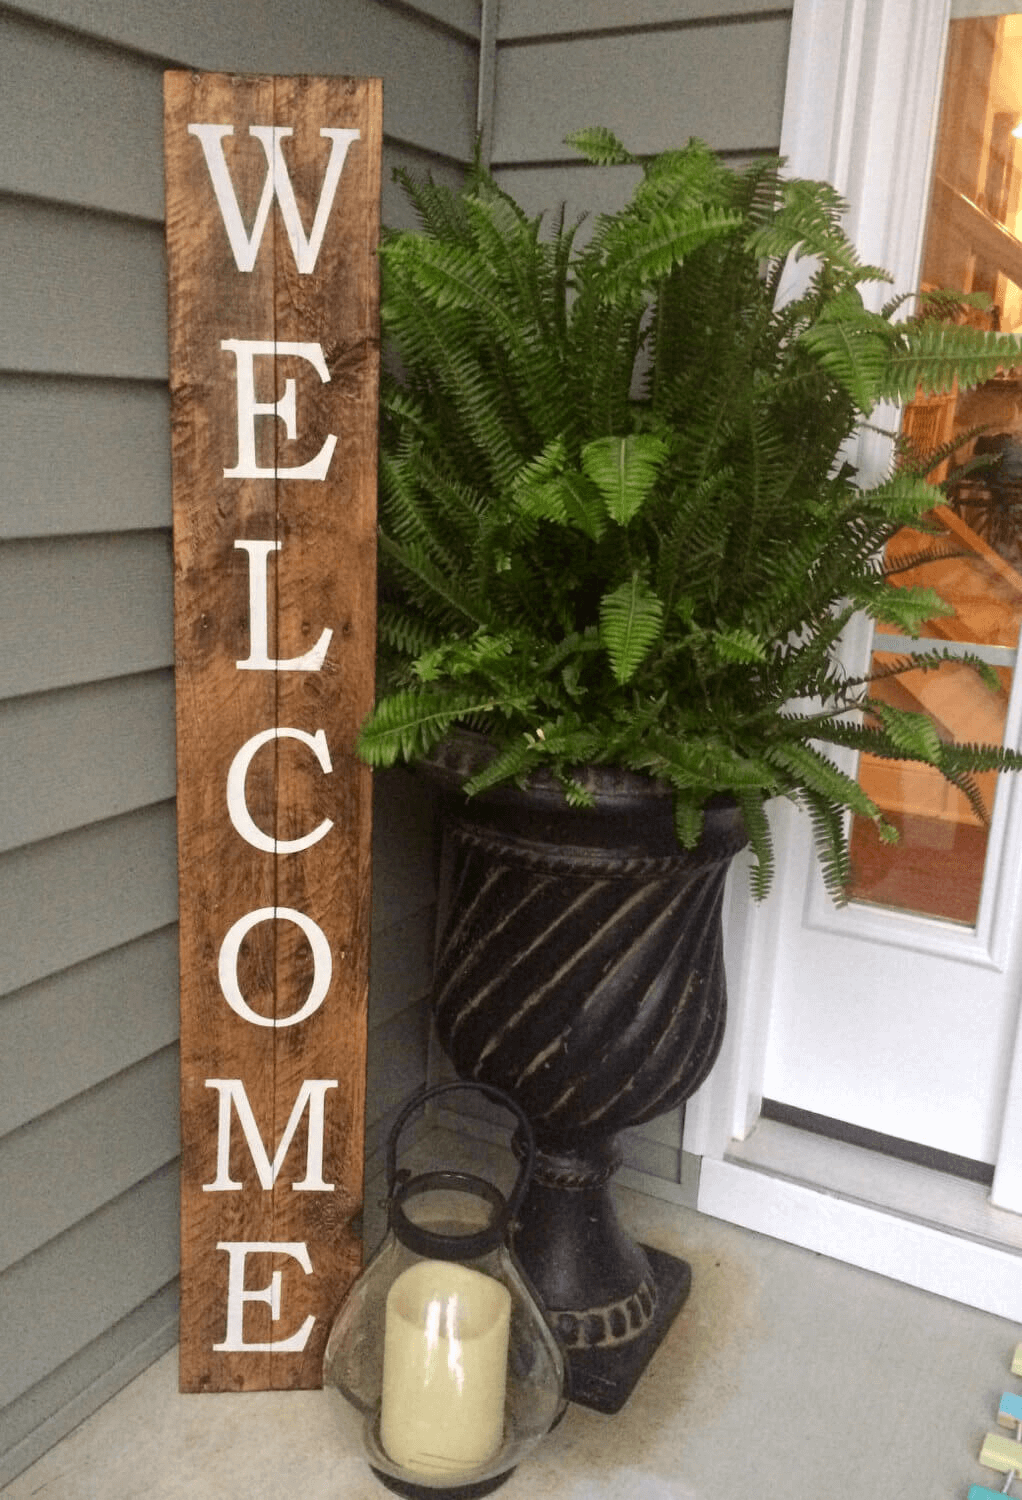 WOODEN WELCOME SIGN DIY RUSTIC FOR FRONT PORCH DECOR IDEAS